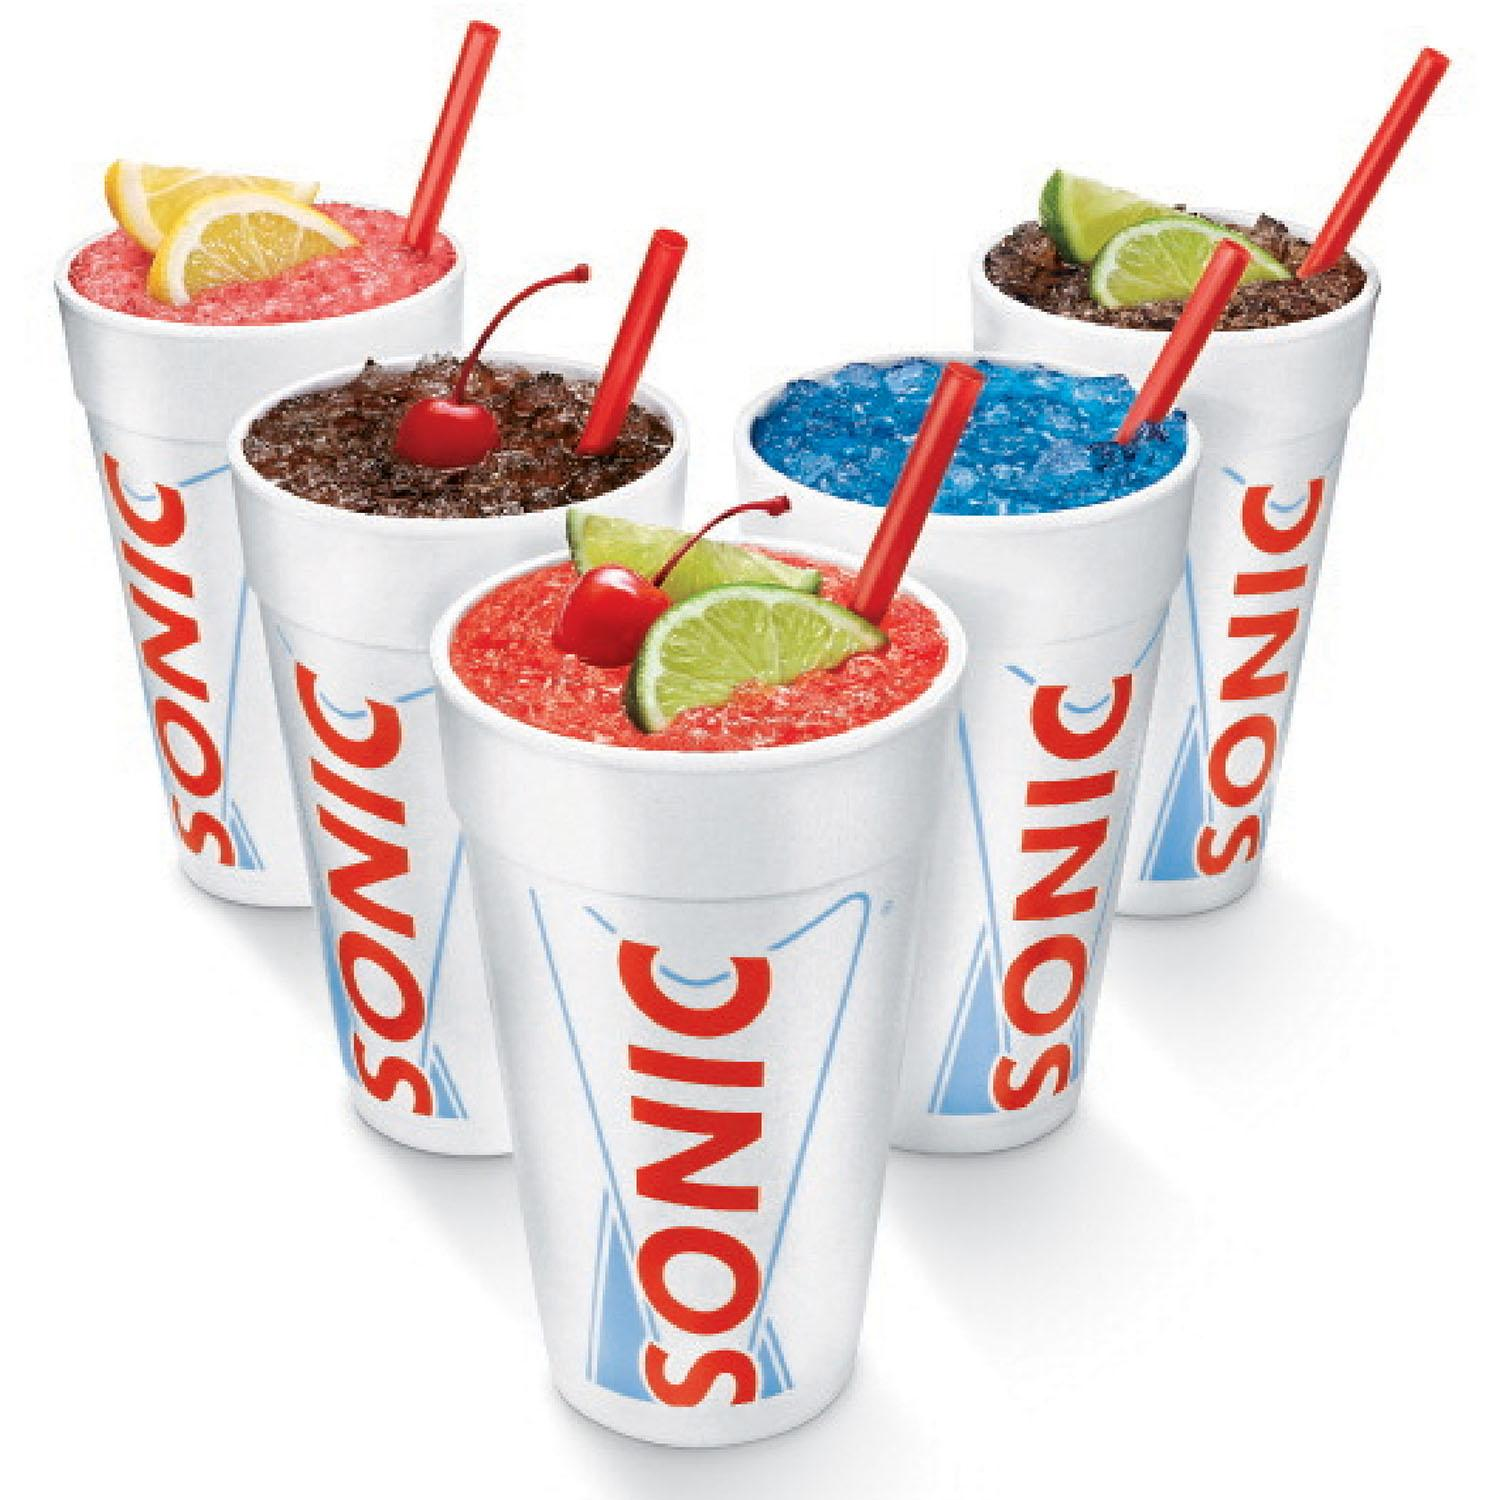 Free Sonic Slush When You Download Their App